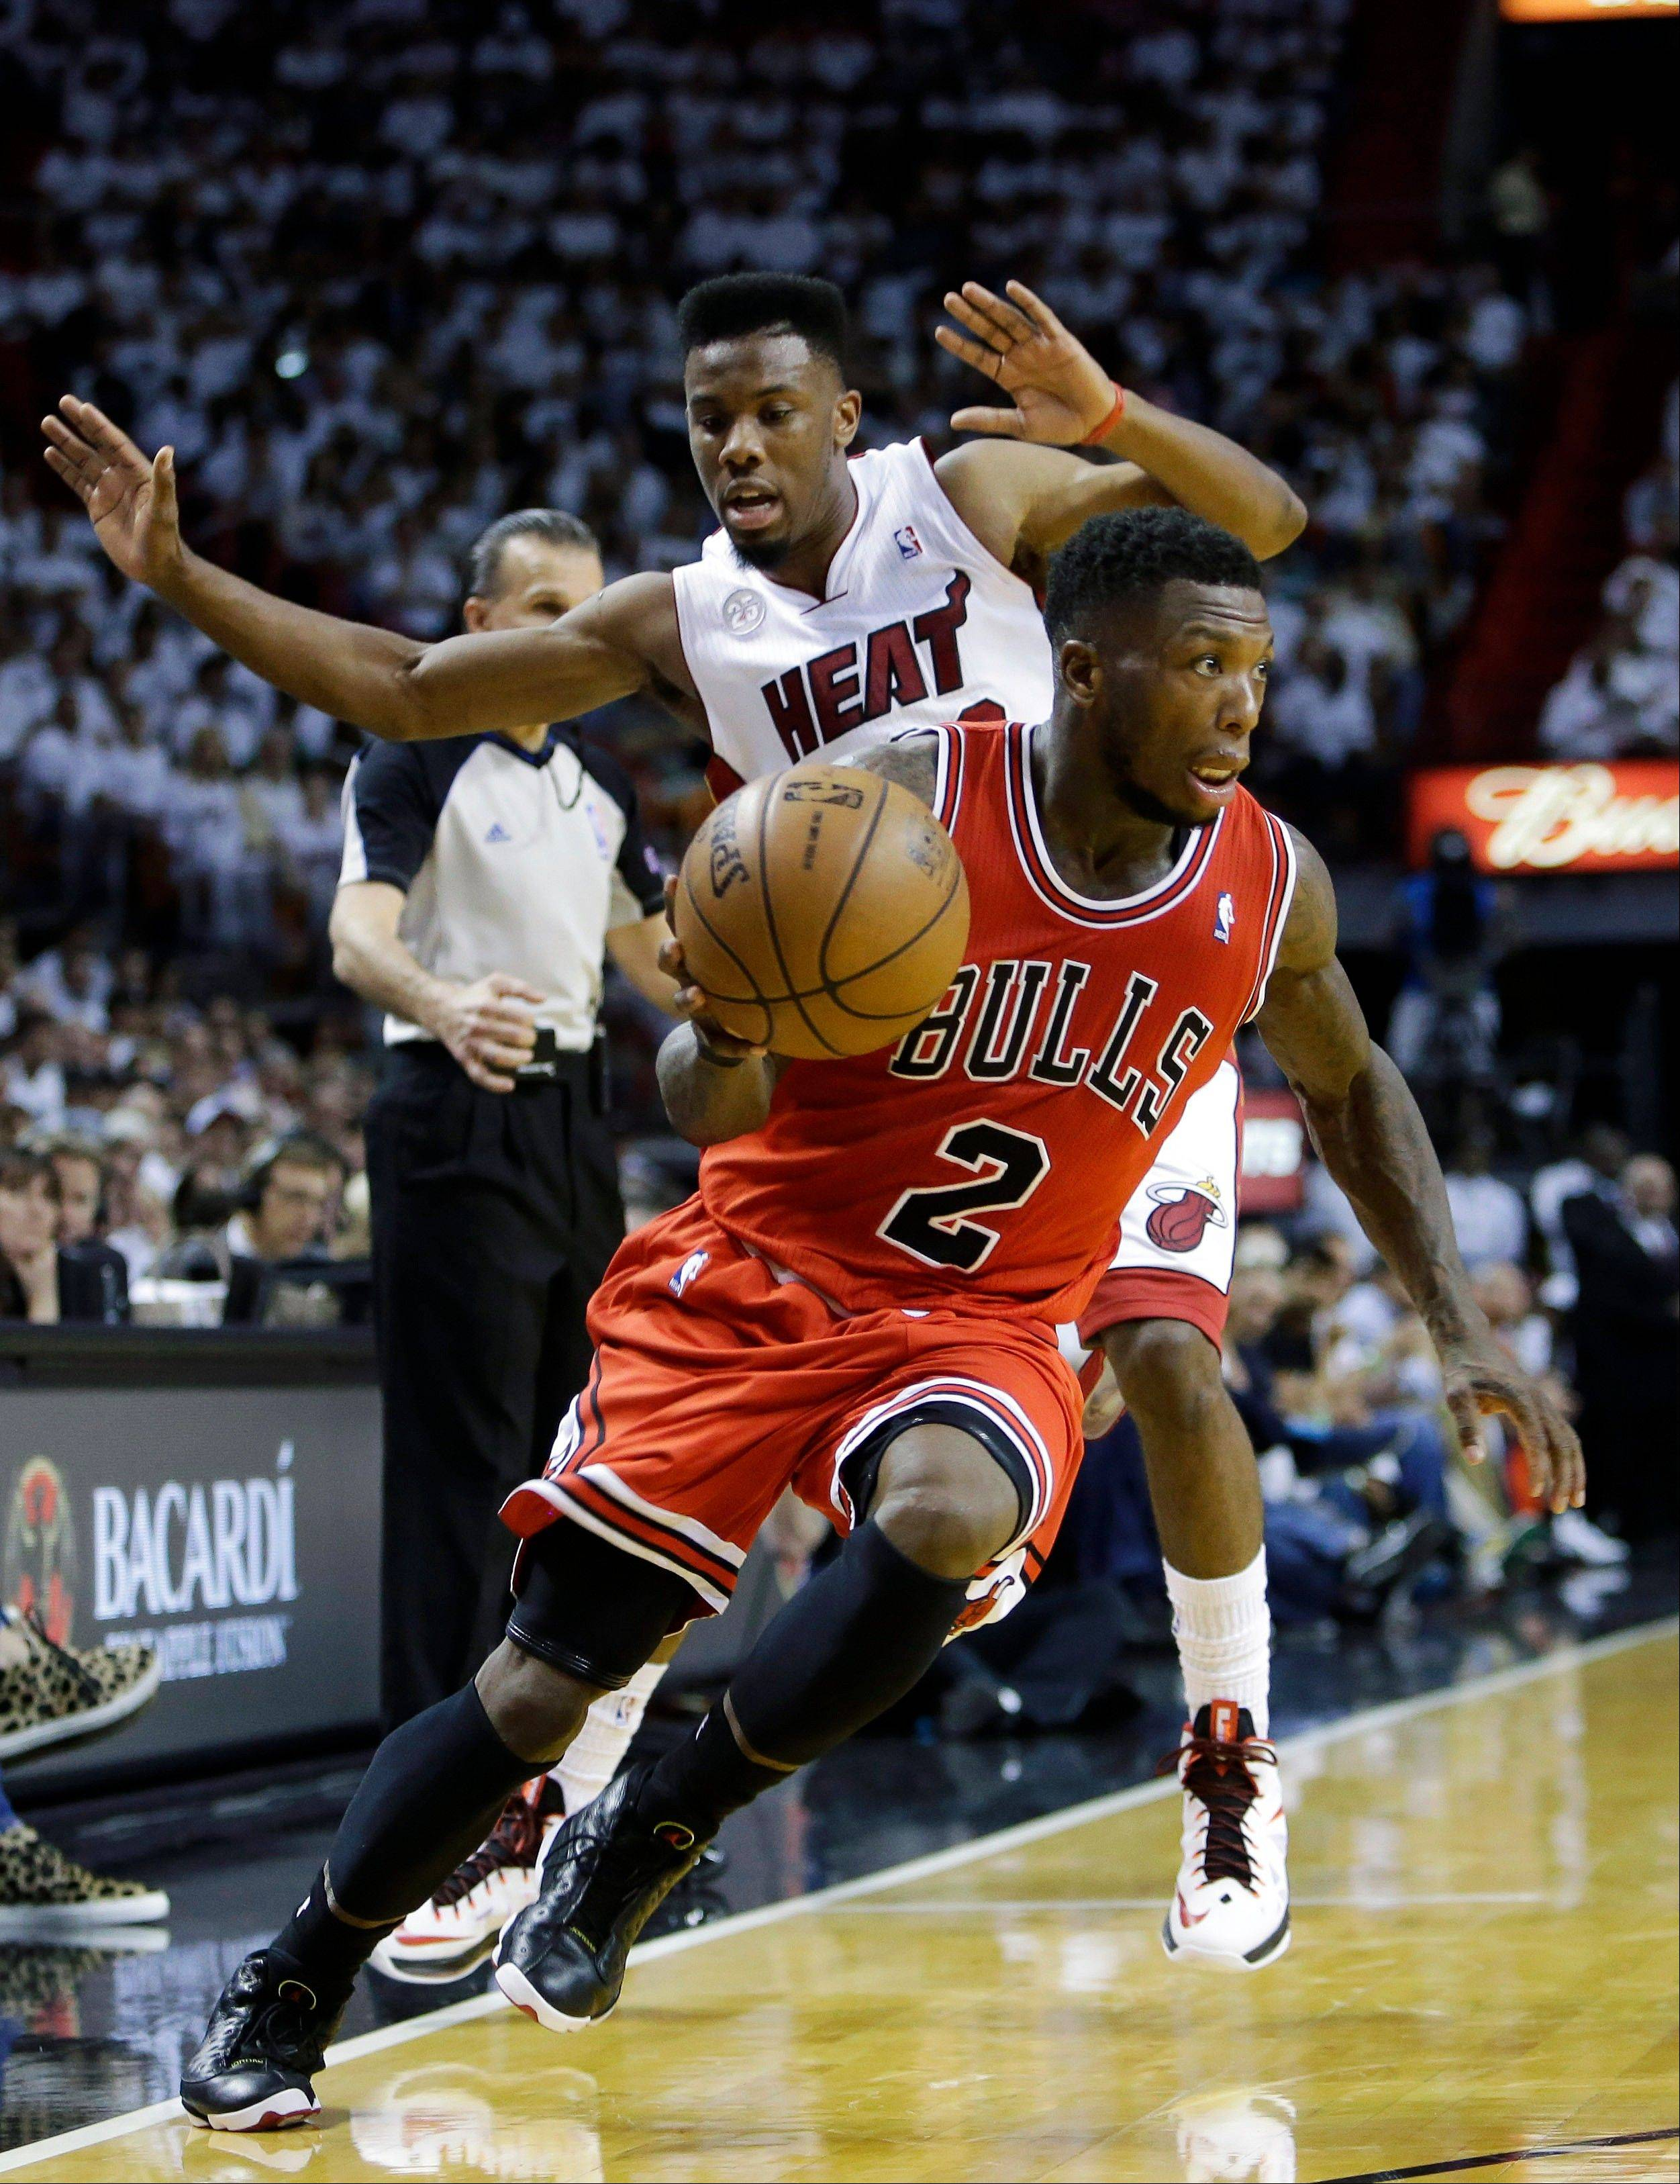 Chicago Bulls guard Nate Robinson (2) drives to the basket past Miami Heat guard Norris Cole during the second half of Game 1 of the NBA basketball playoff series in the Eastern Conference semifinals, Monday, May 6, 2013 in Miami. Robinson scored 27 points as the Bulls defeated the Heat 93-86.